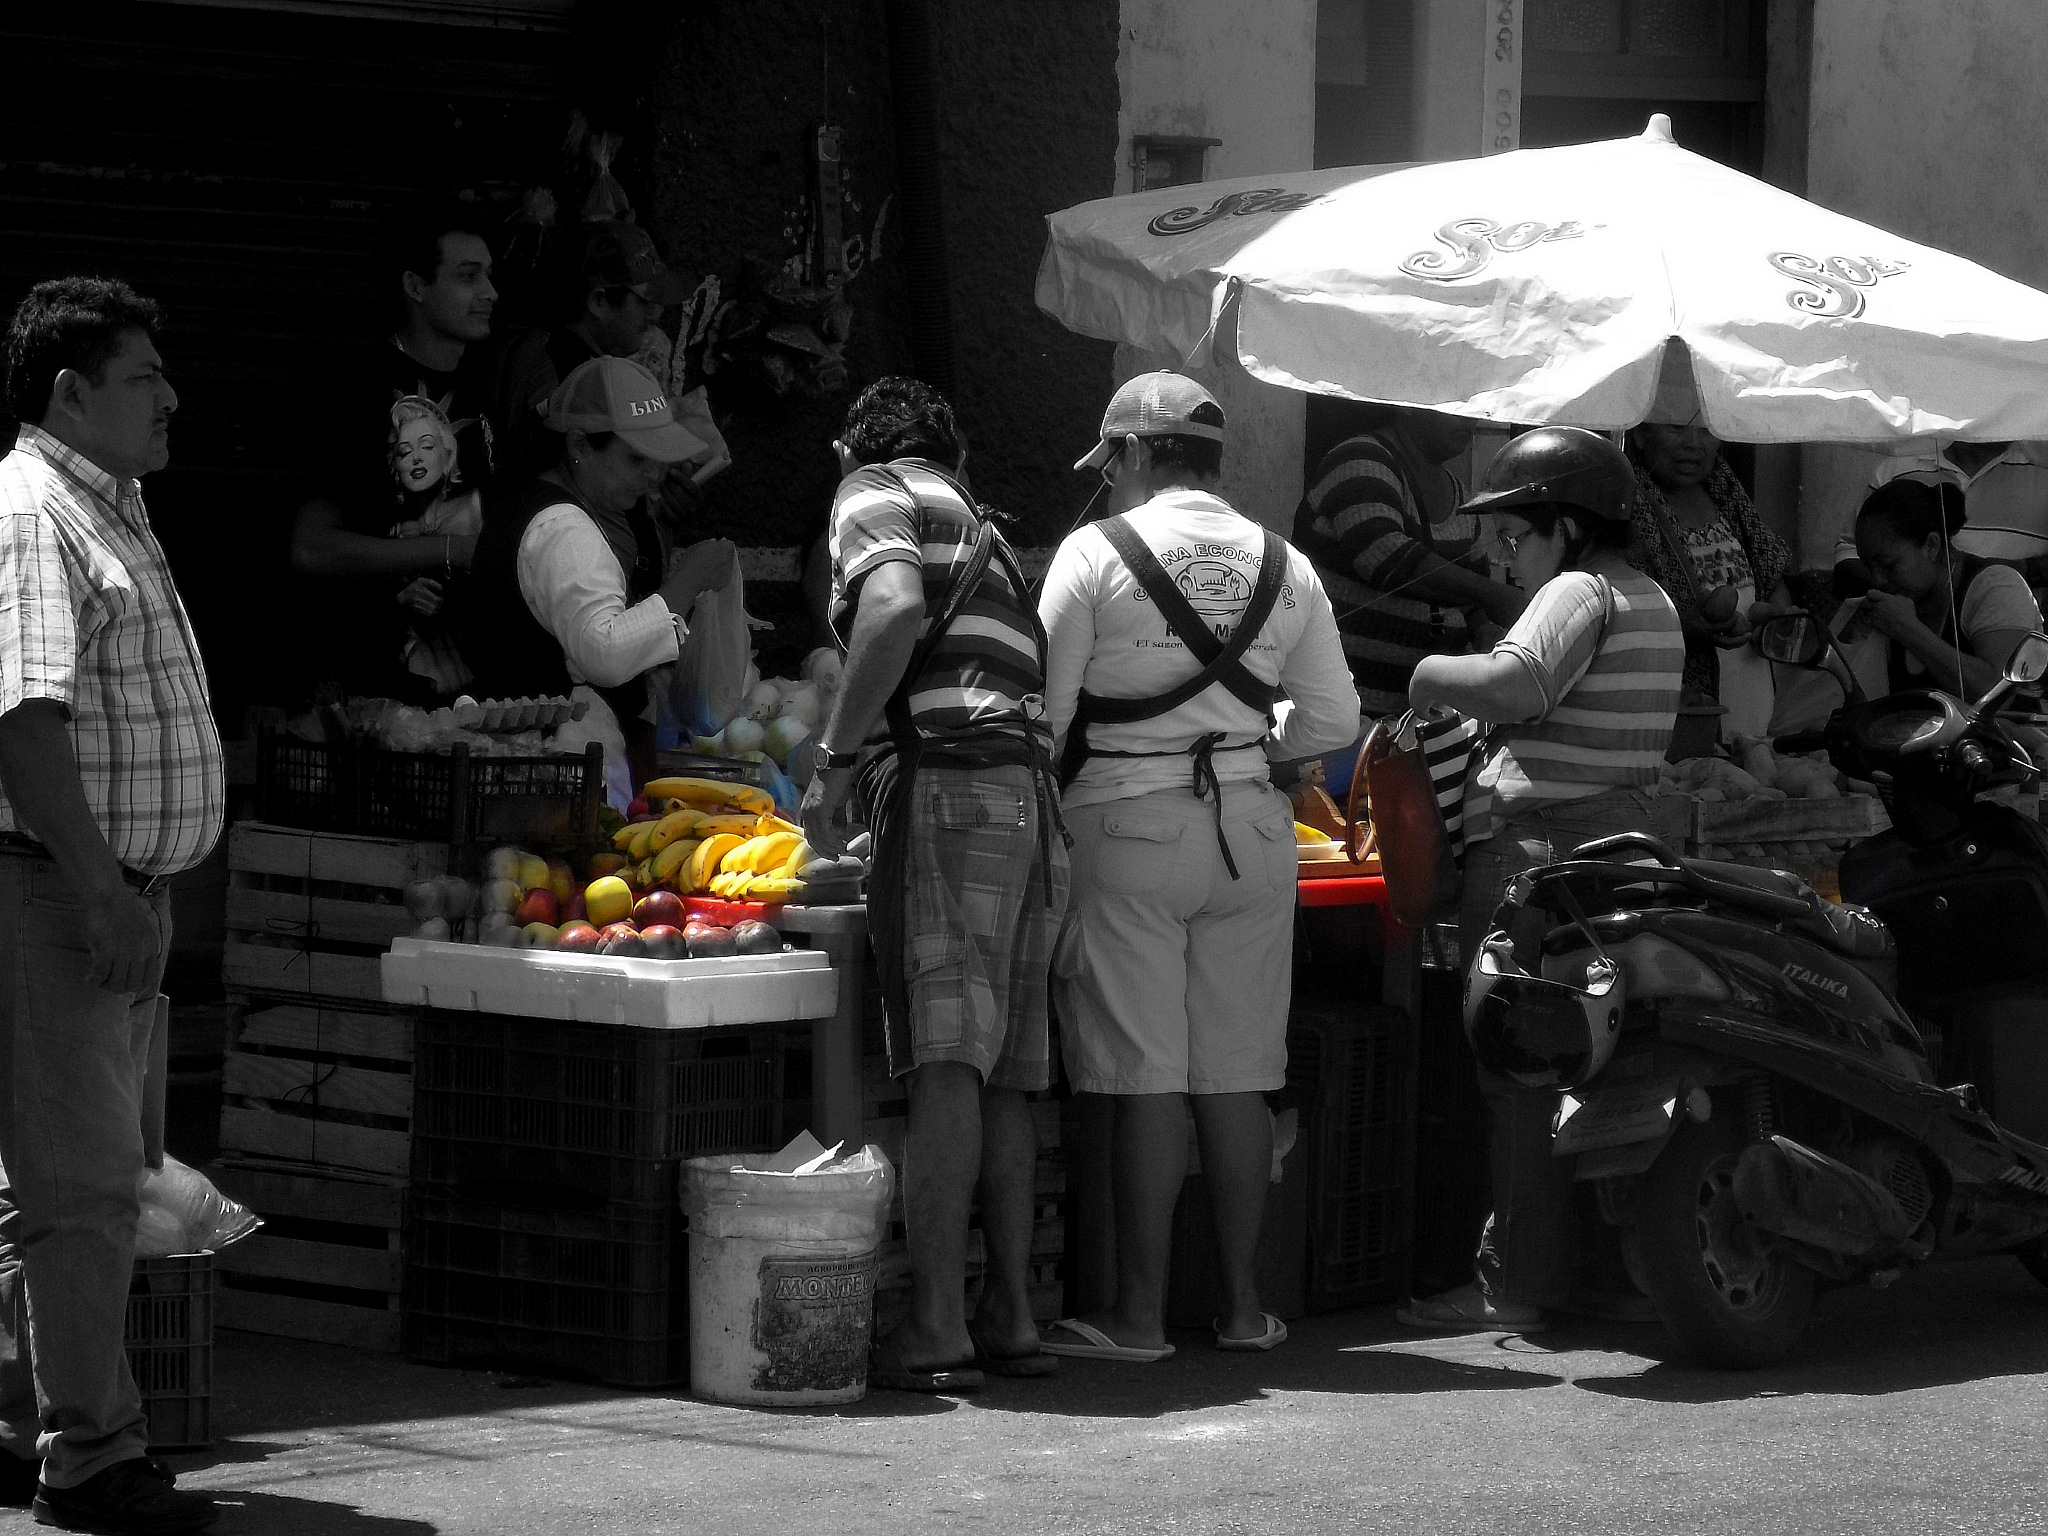 fruit stand and Marilyn by Reid Allan Hanson